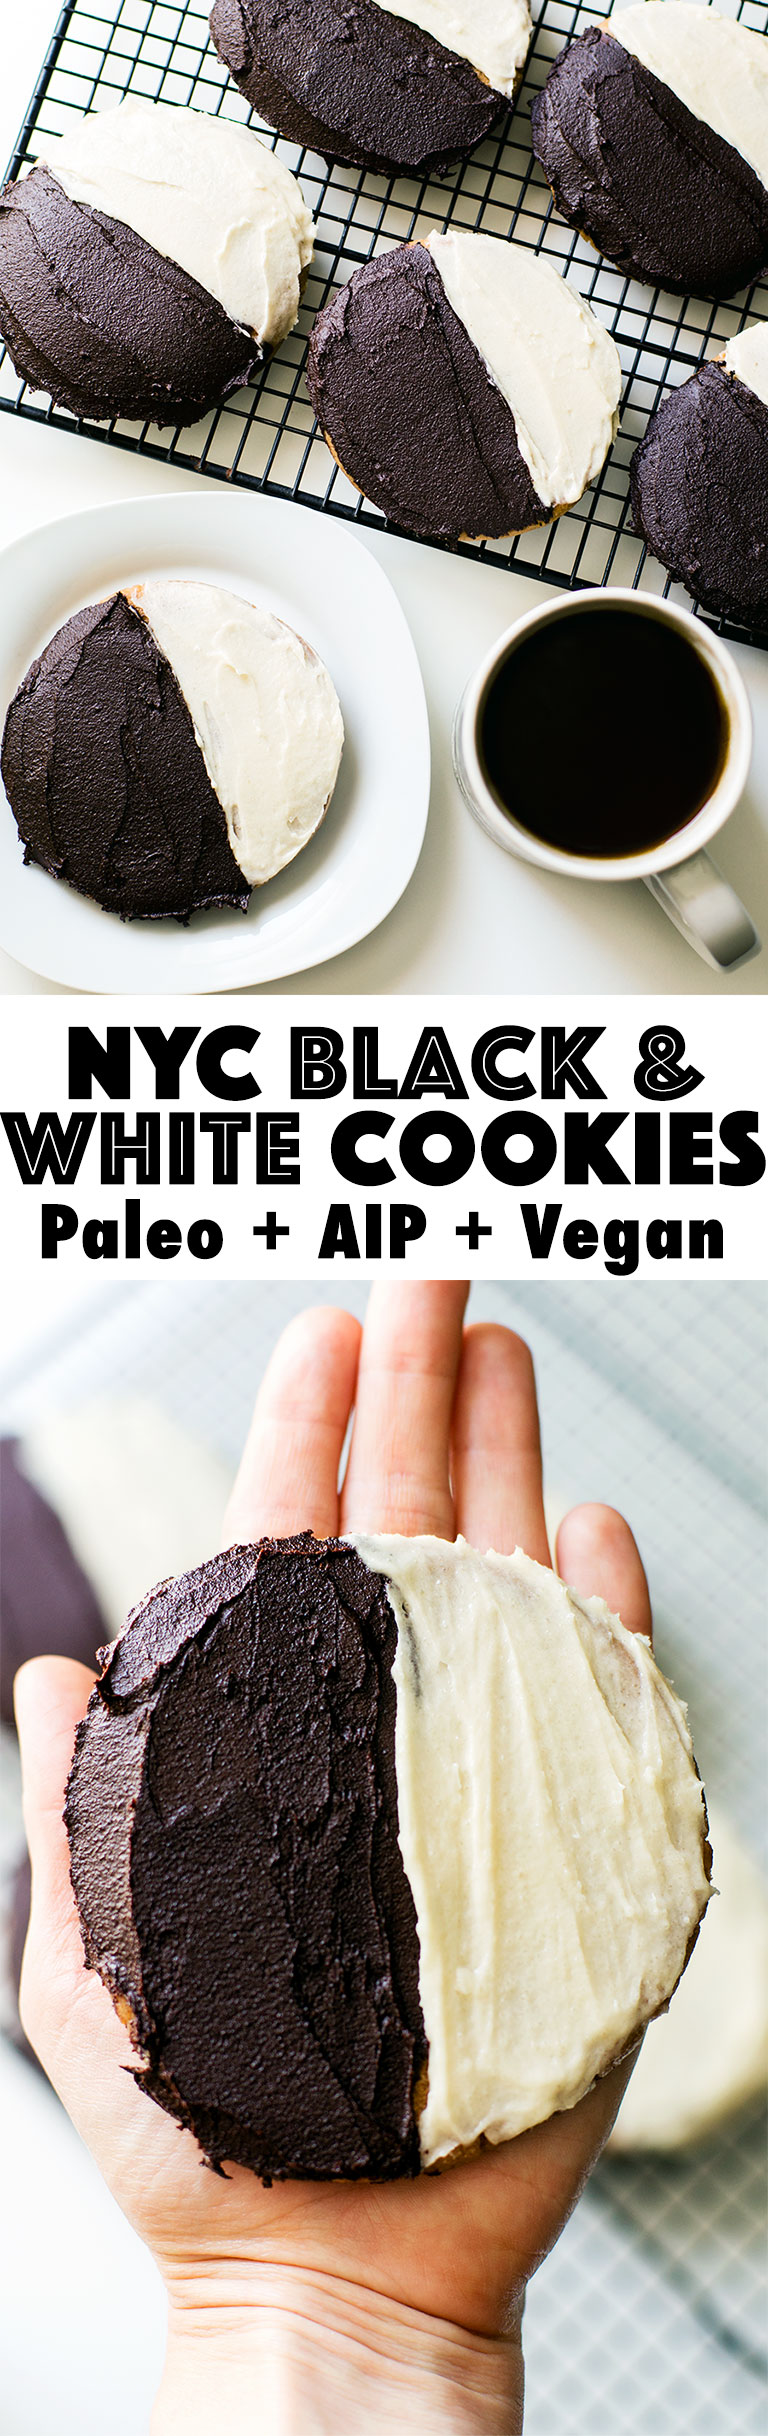 Paleo NYC black and white cookies